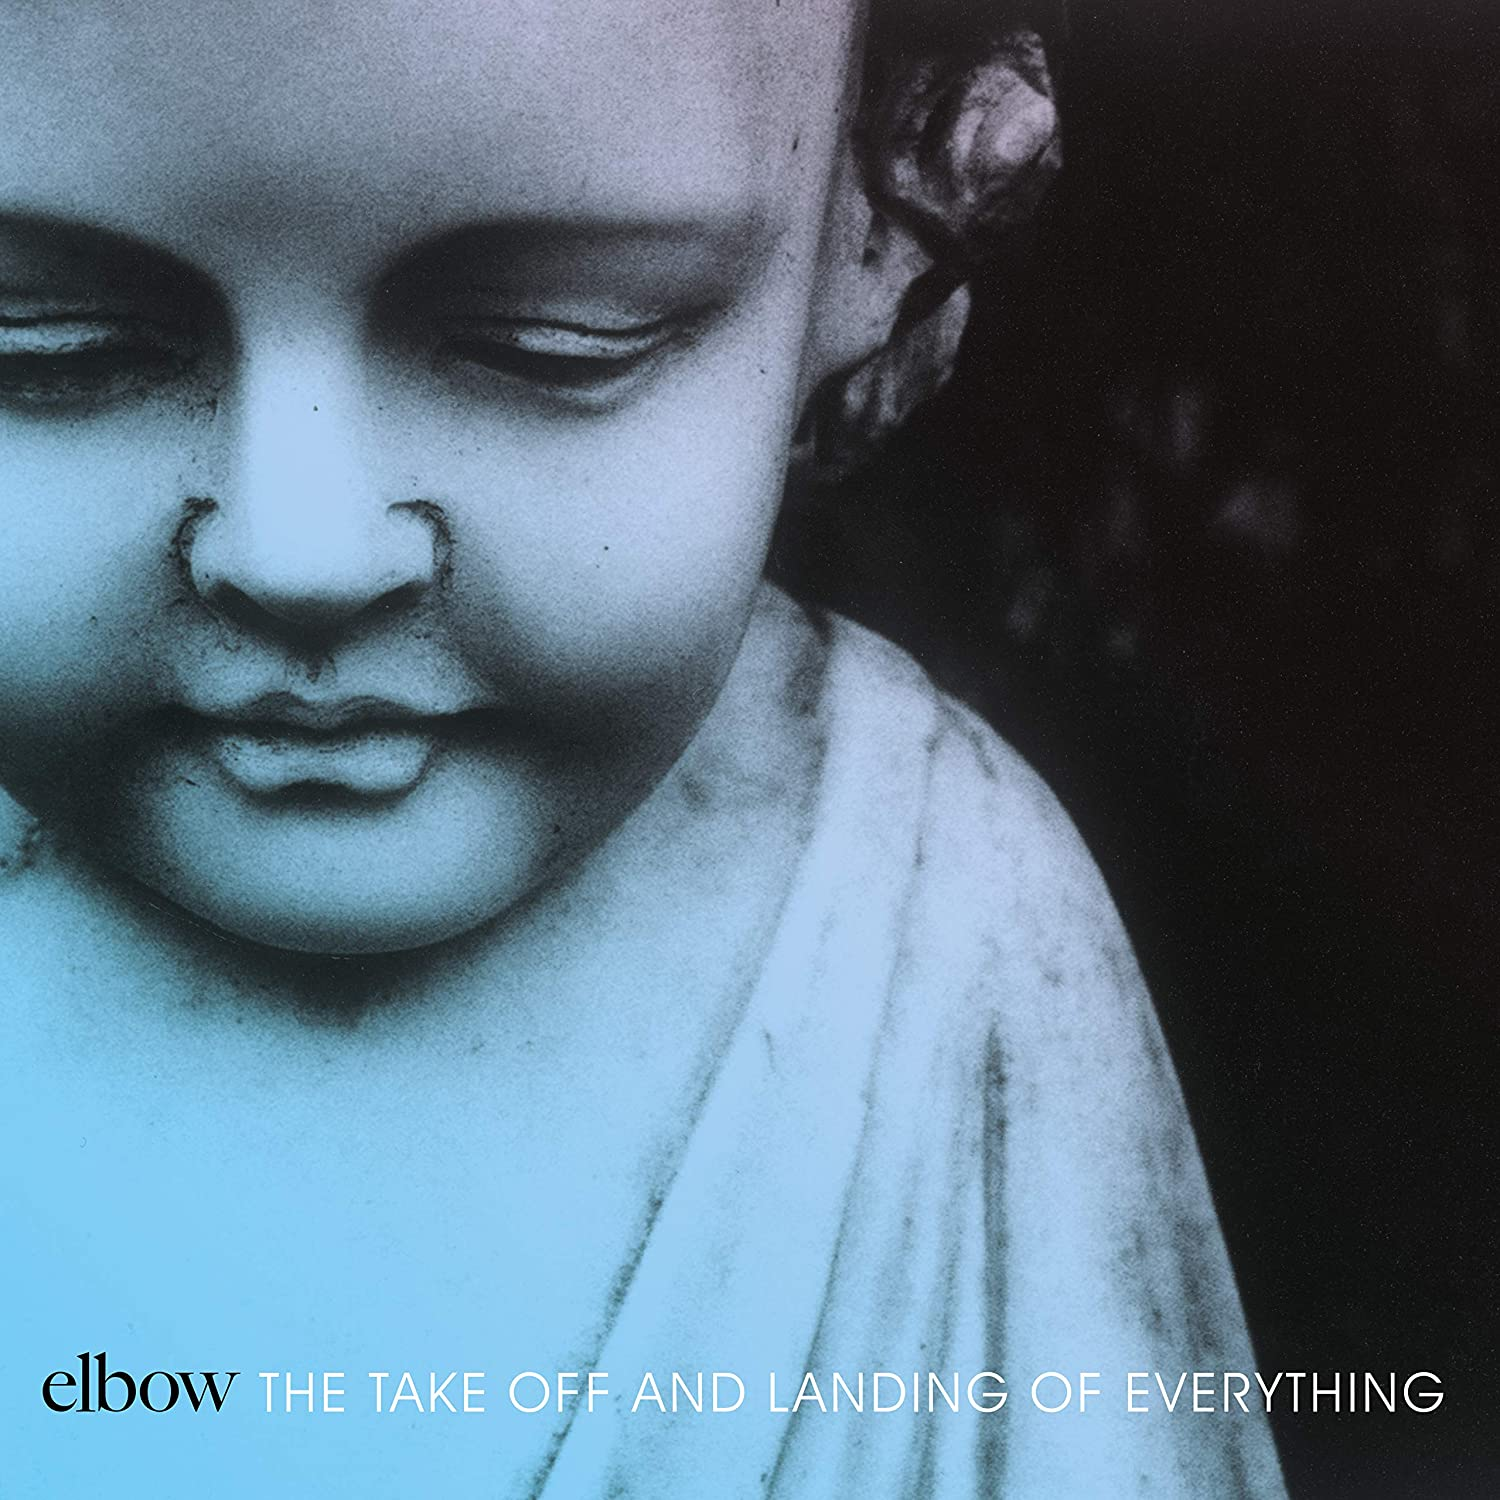 Elbow - The Take Off And Landing Of Everything [2xLP]